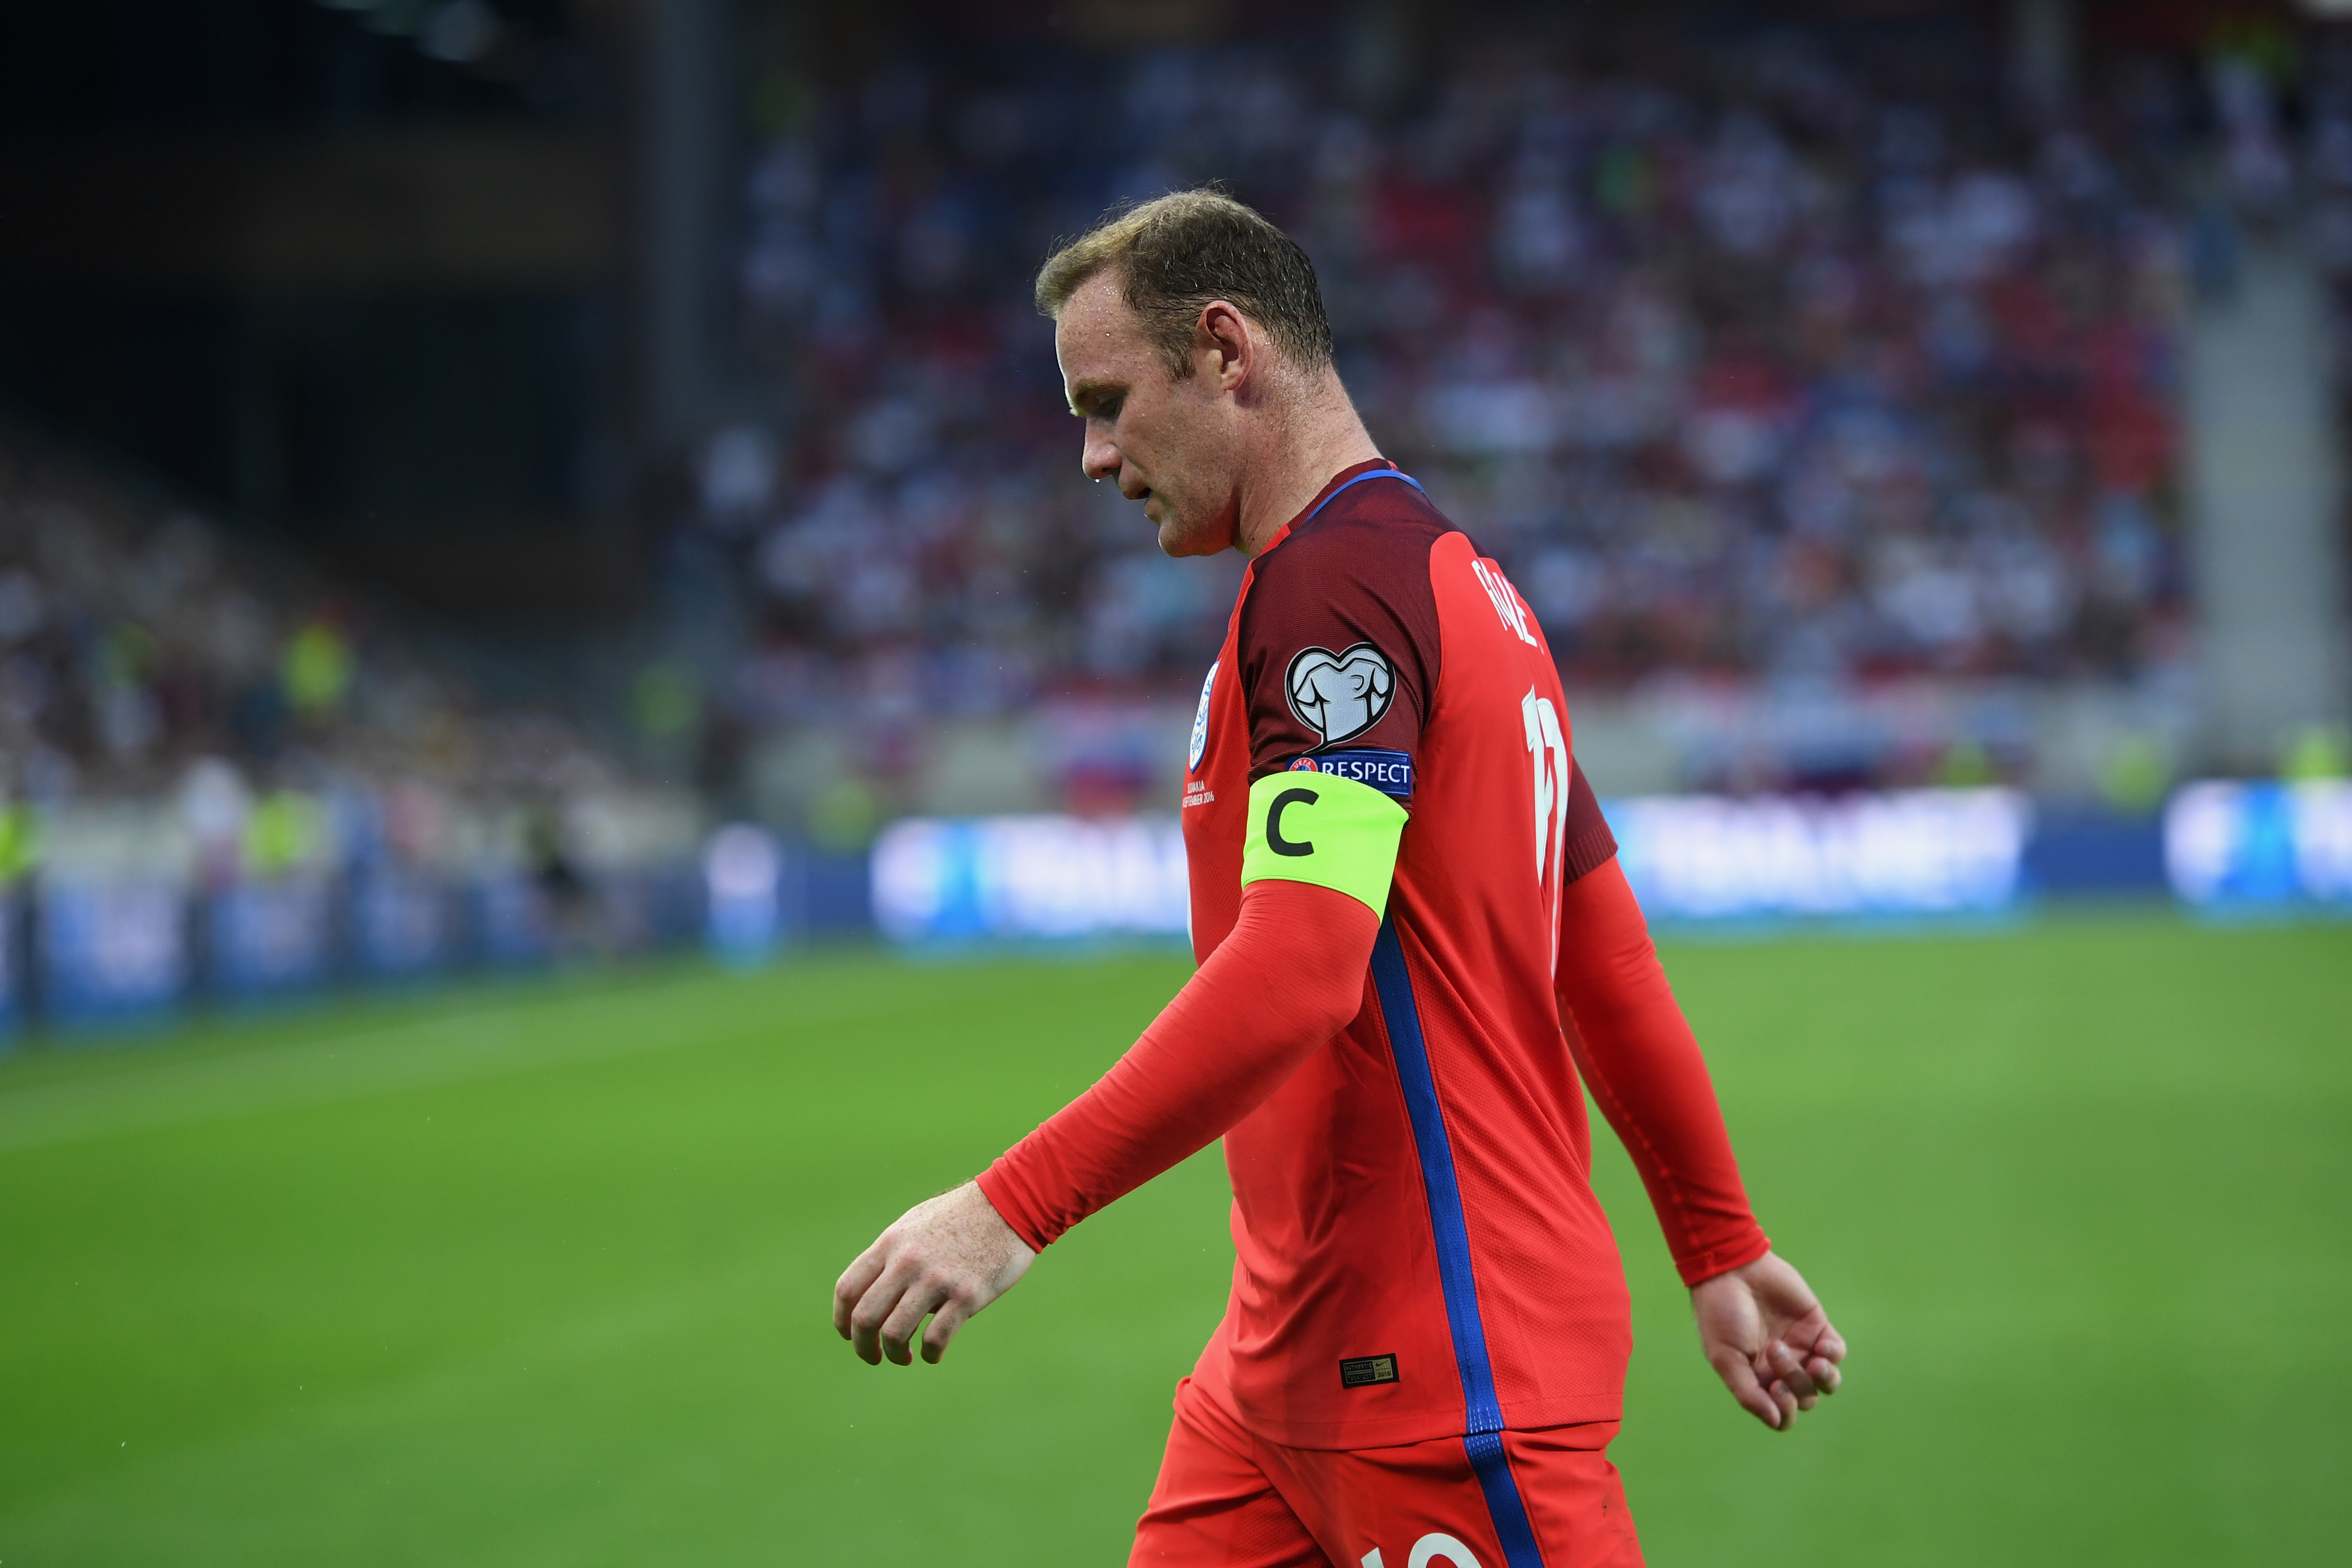 TRNAVA, SLOVAKIA - SEPTEMBER 04: Wayne Rooney of England looks on during the 2018 FIFA World Cup Group F qualifying match between Slovakia and England at City Arena on September 4, 2016 in Trnava, Slovakia. (Photo by Michael Regan - The FA/The FA via Getty Images)